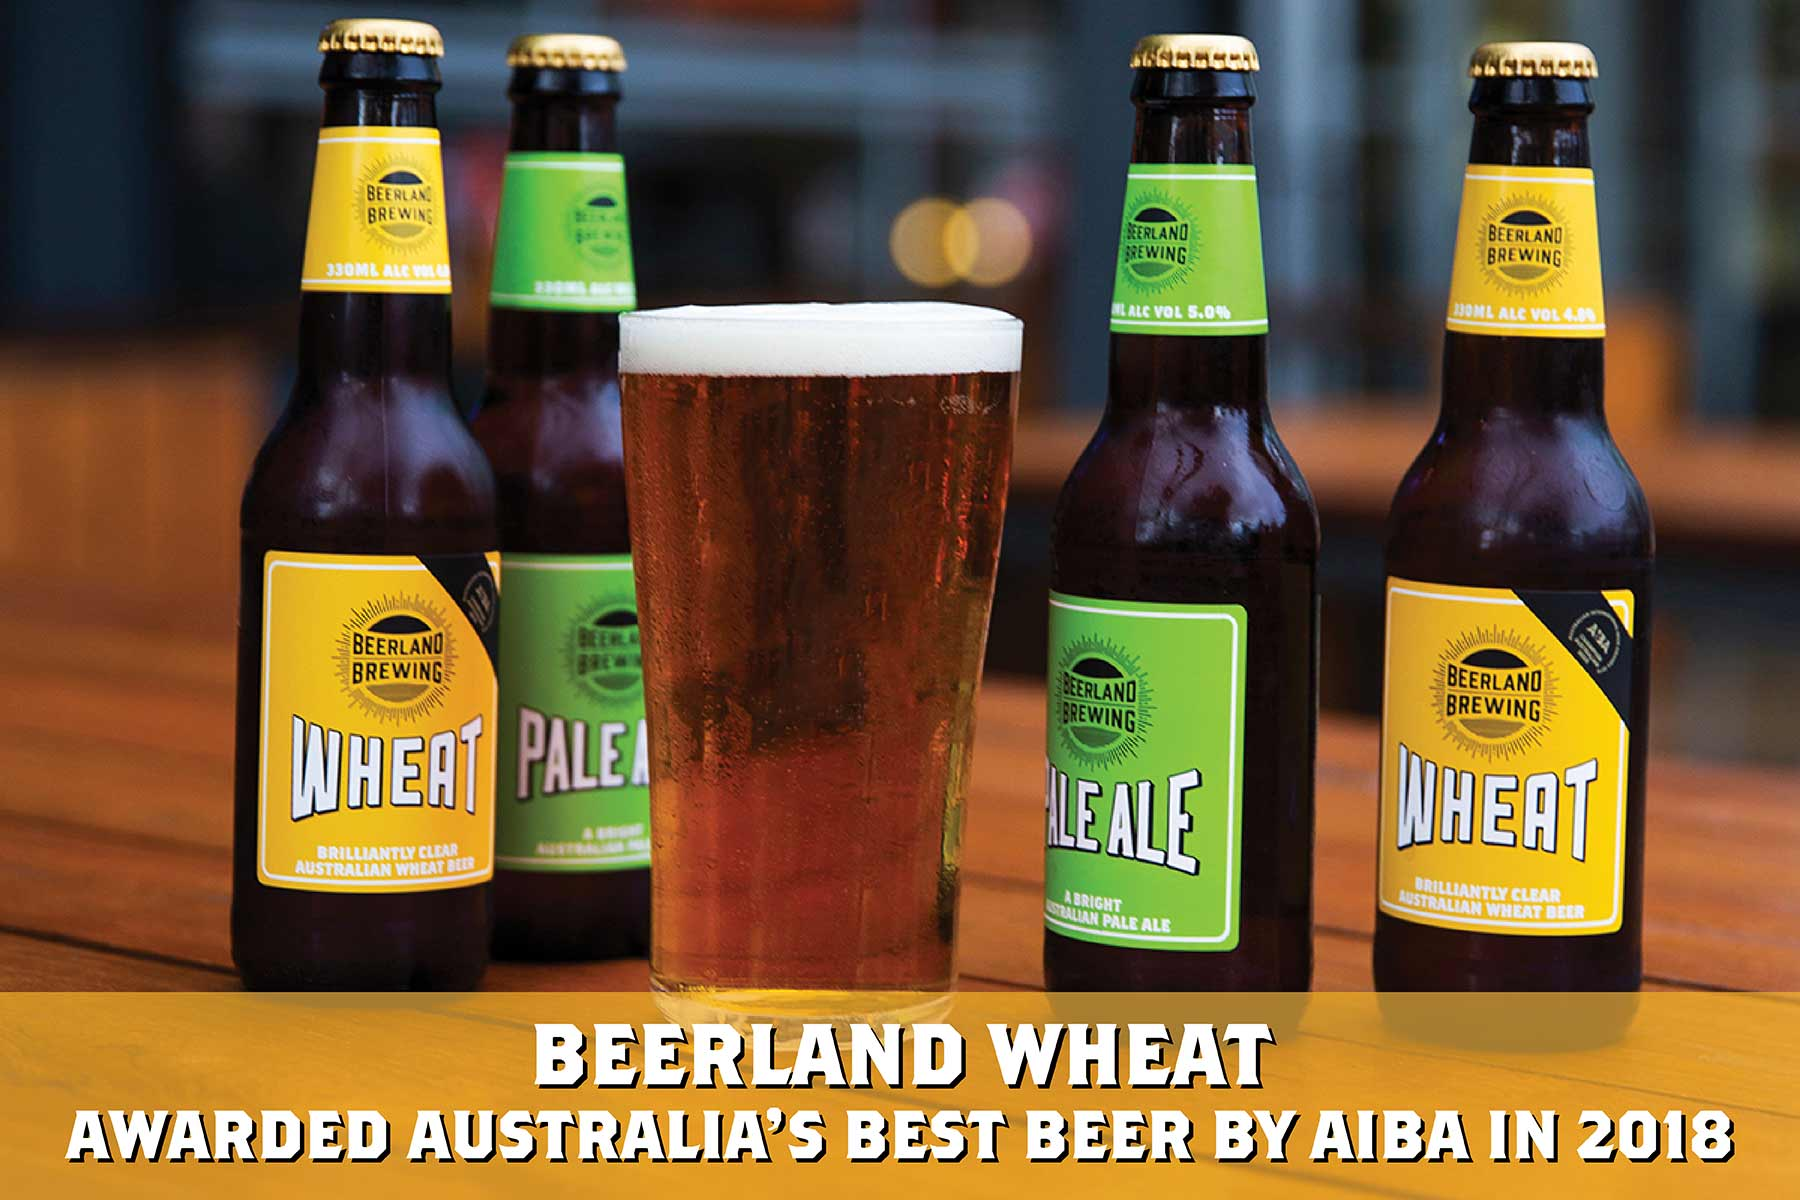 Beerland Wheat - awarded Australia's Best Beer by AIBA in 2018